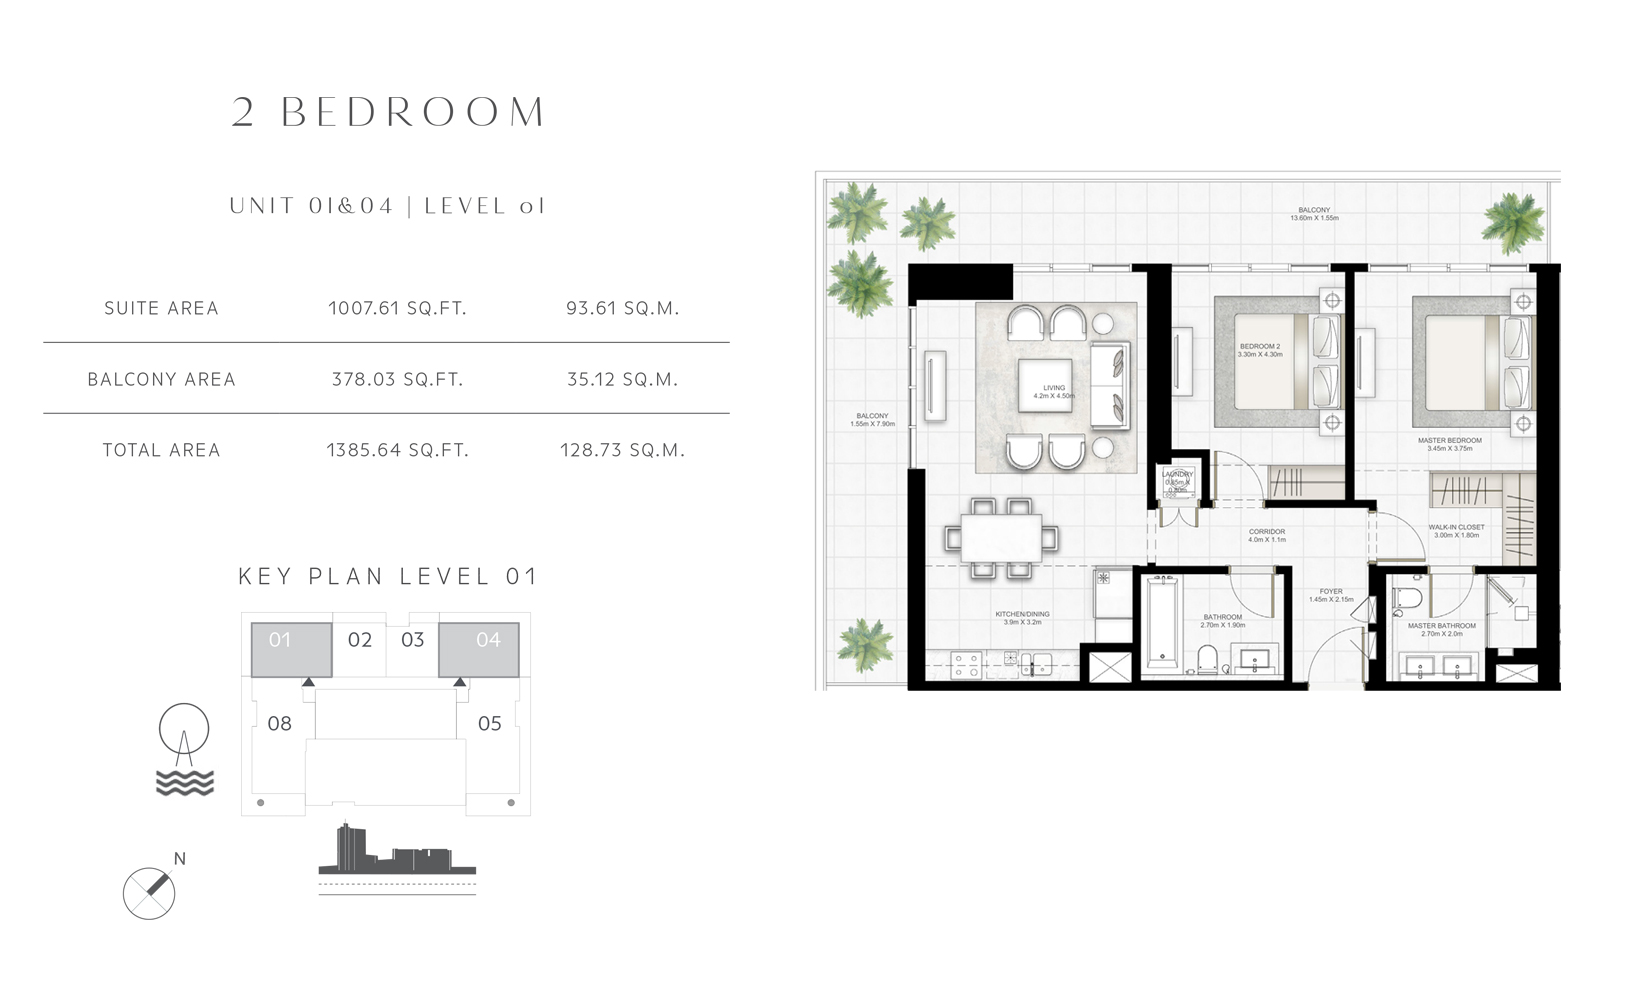 2 Bedroom Unit 01 - 04 Level 01 Size 1385.64 sq.ft